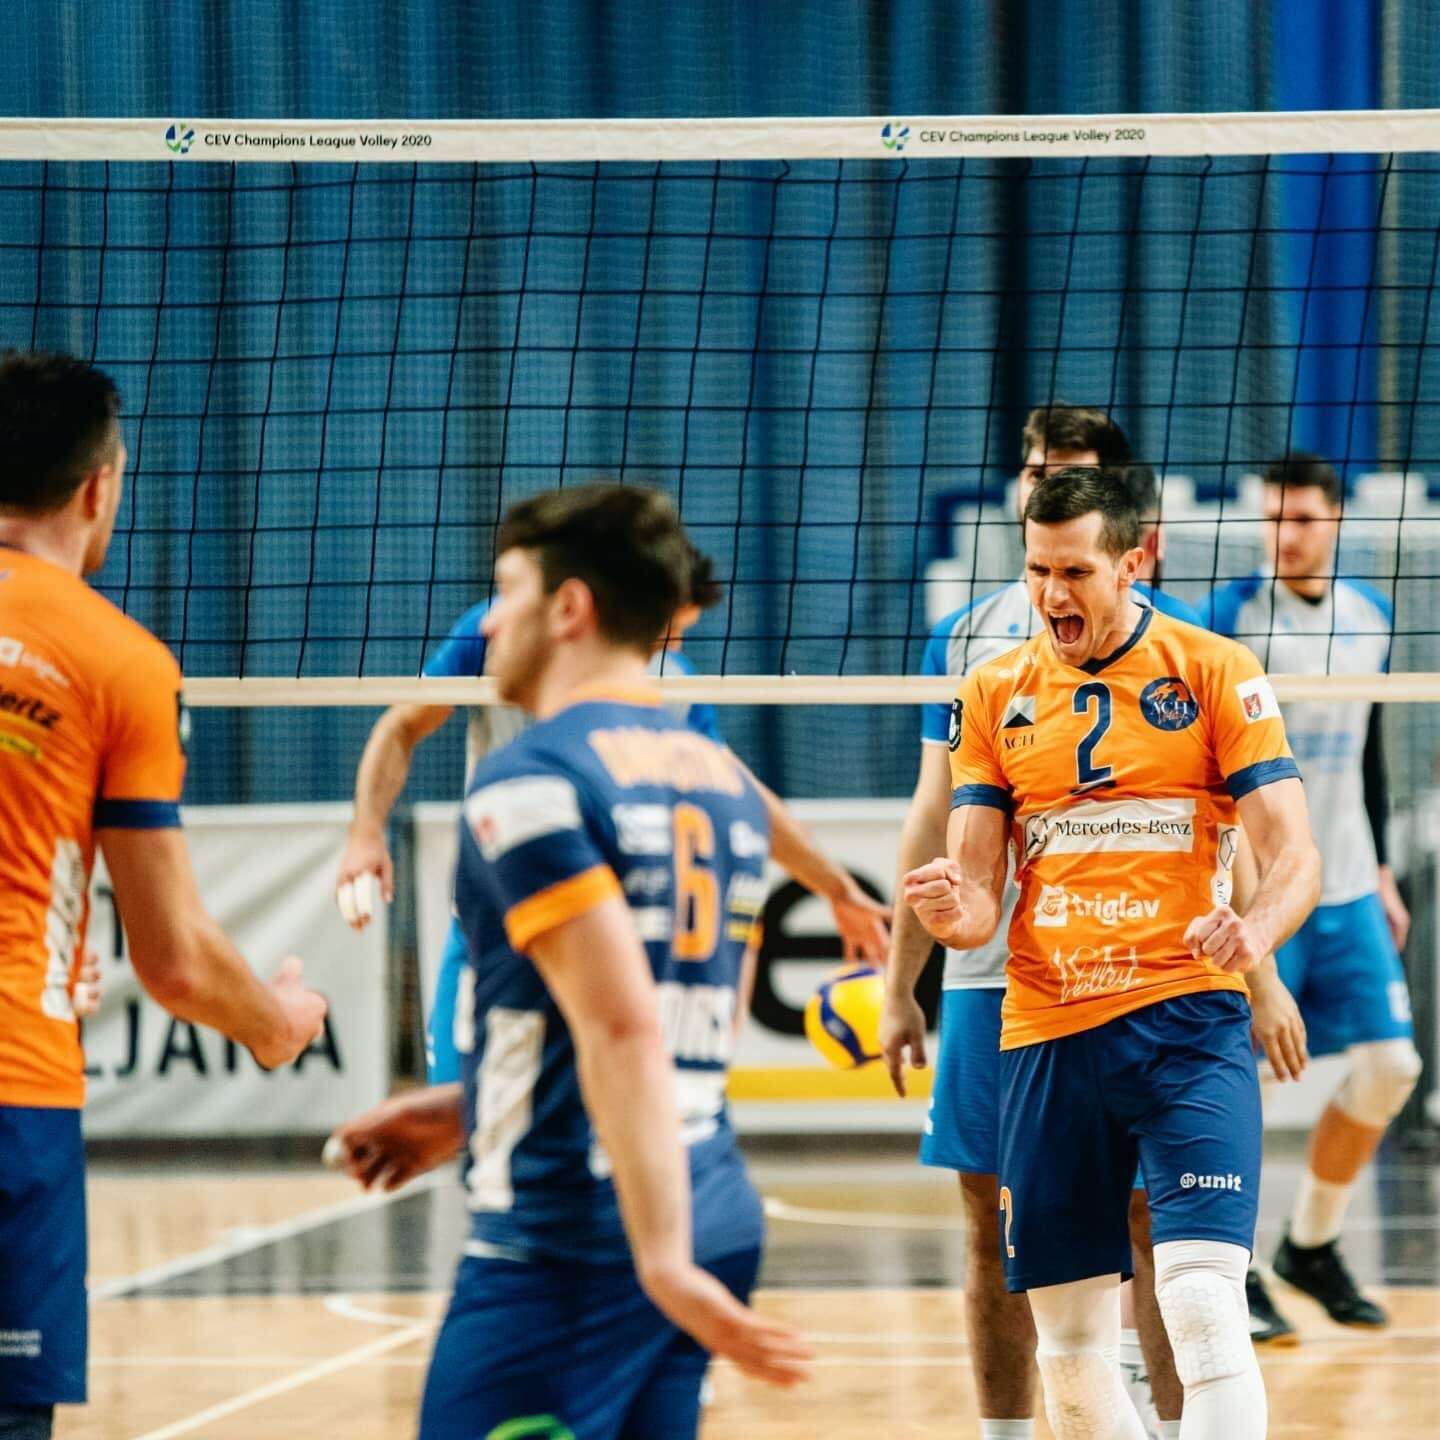 Mevza League: Defending Champions ACH Volley Ljubljana secured first place a match in advance